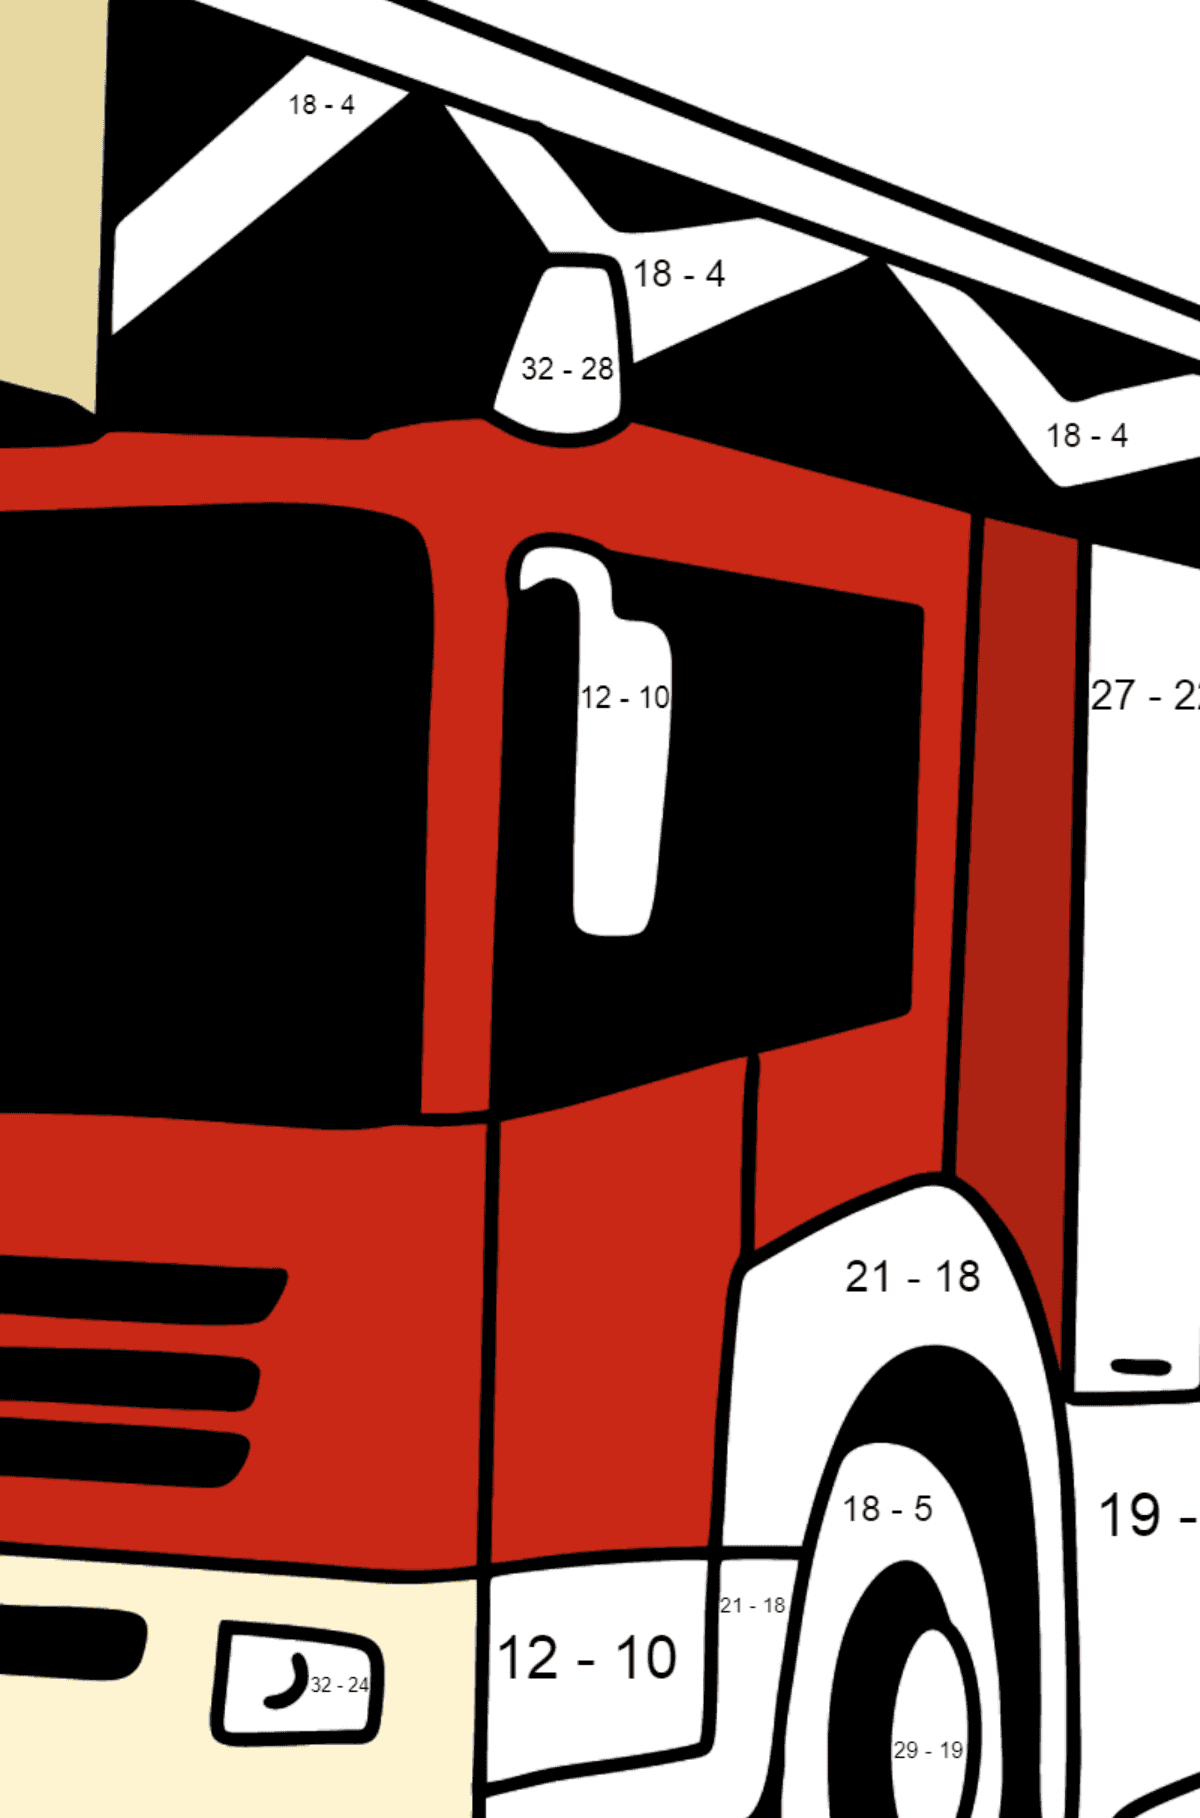 Fire Truck in Germany coloring page - Math Coloring - Subtraction for Kids